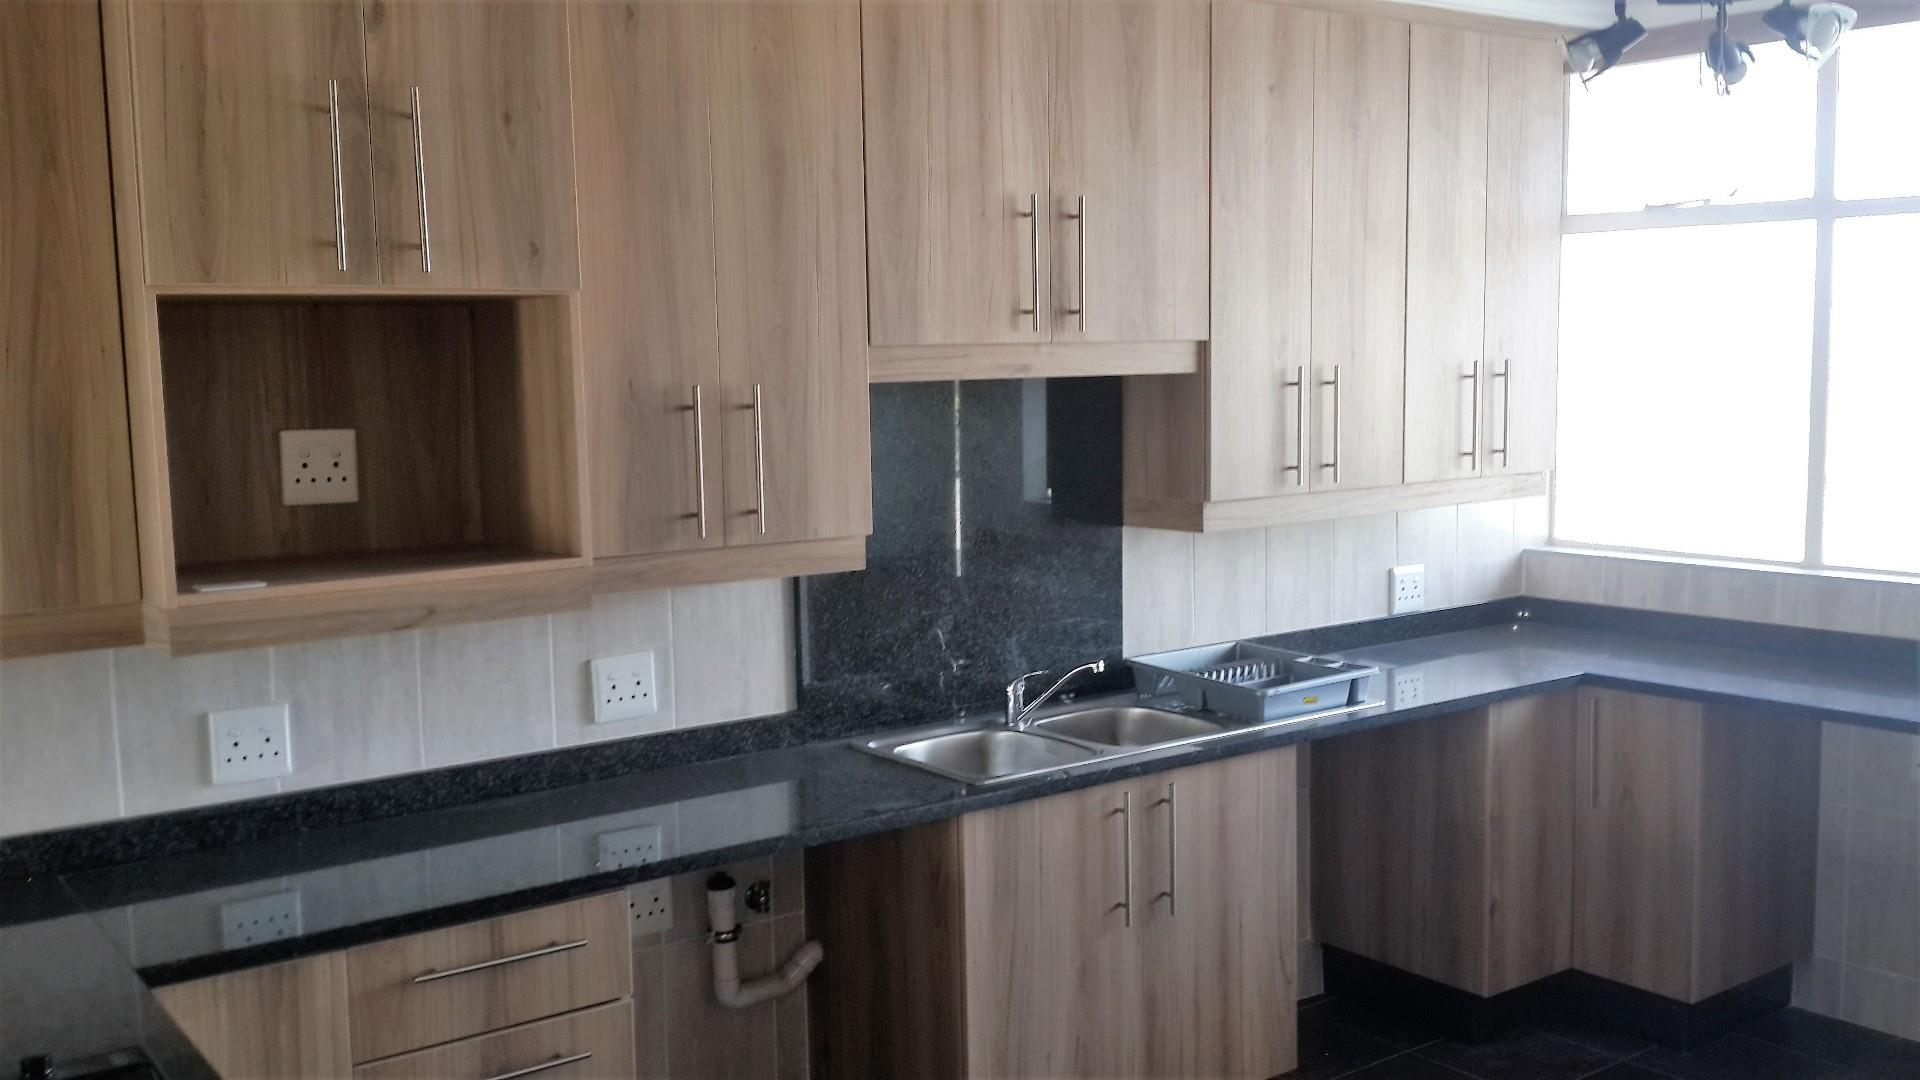 2 Bedroom Apartment / Flat For Sale in Arcon Park